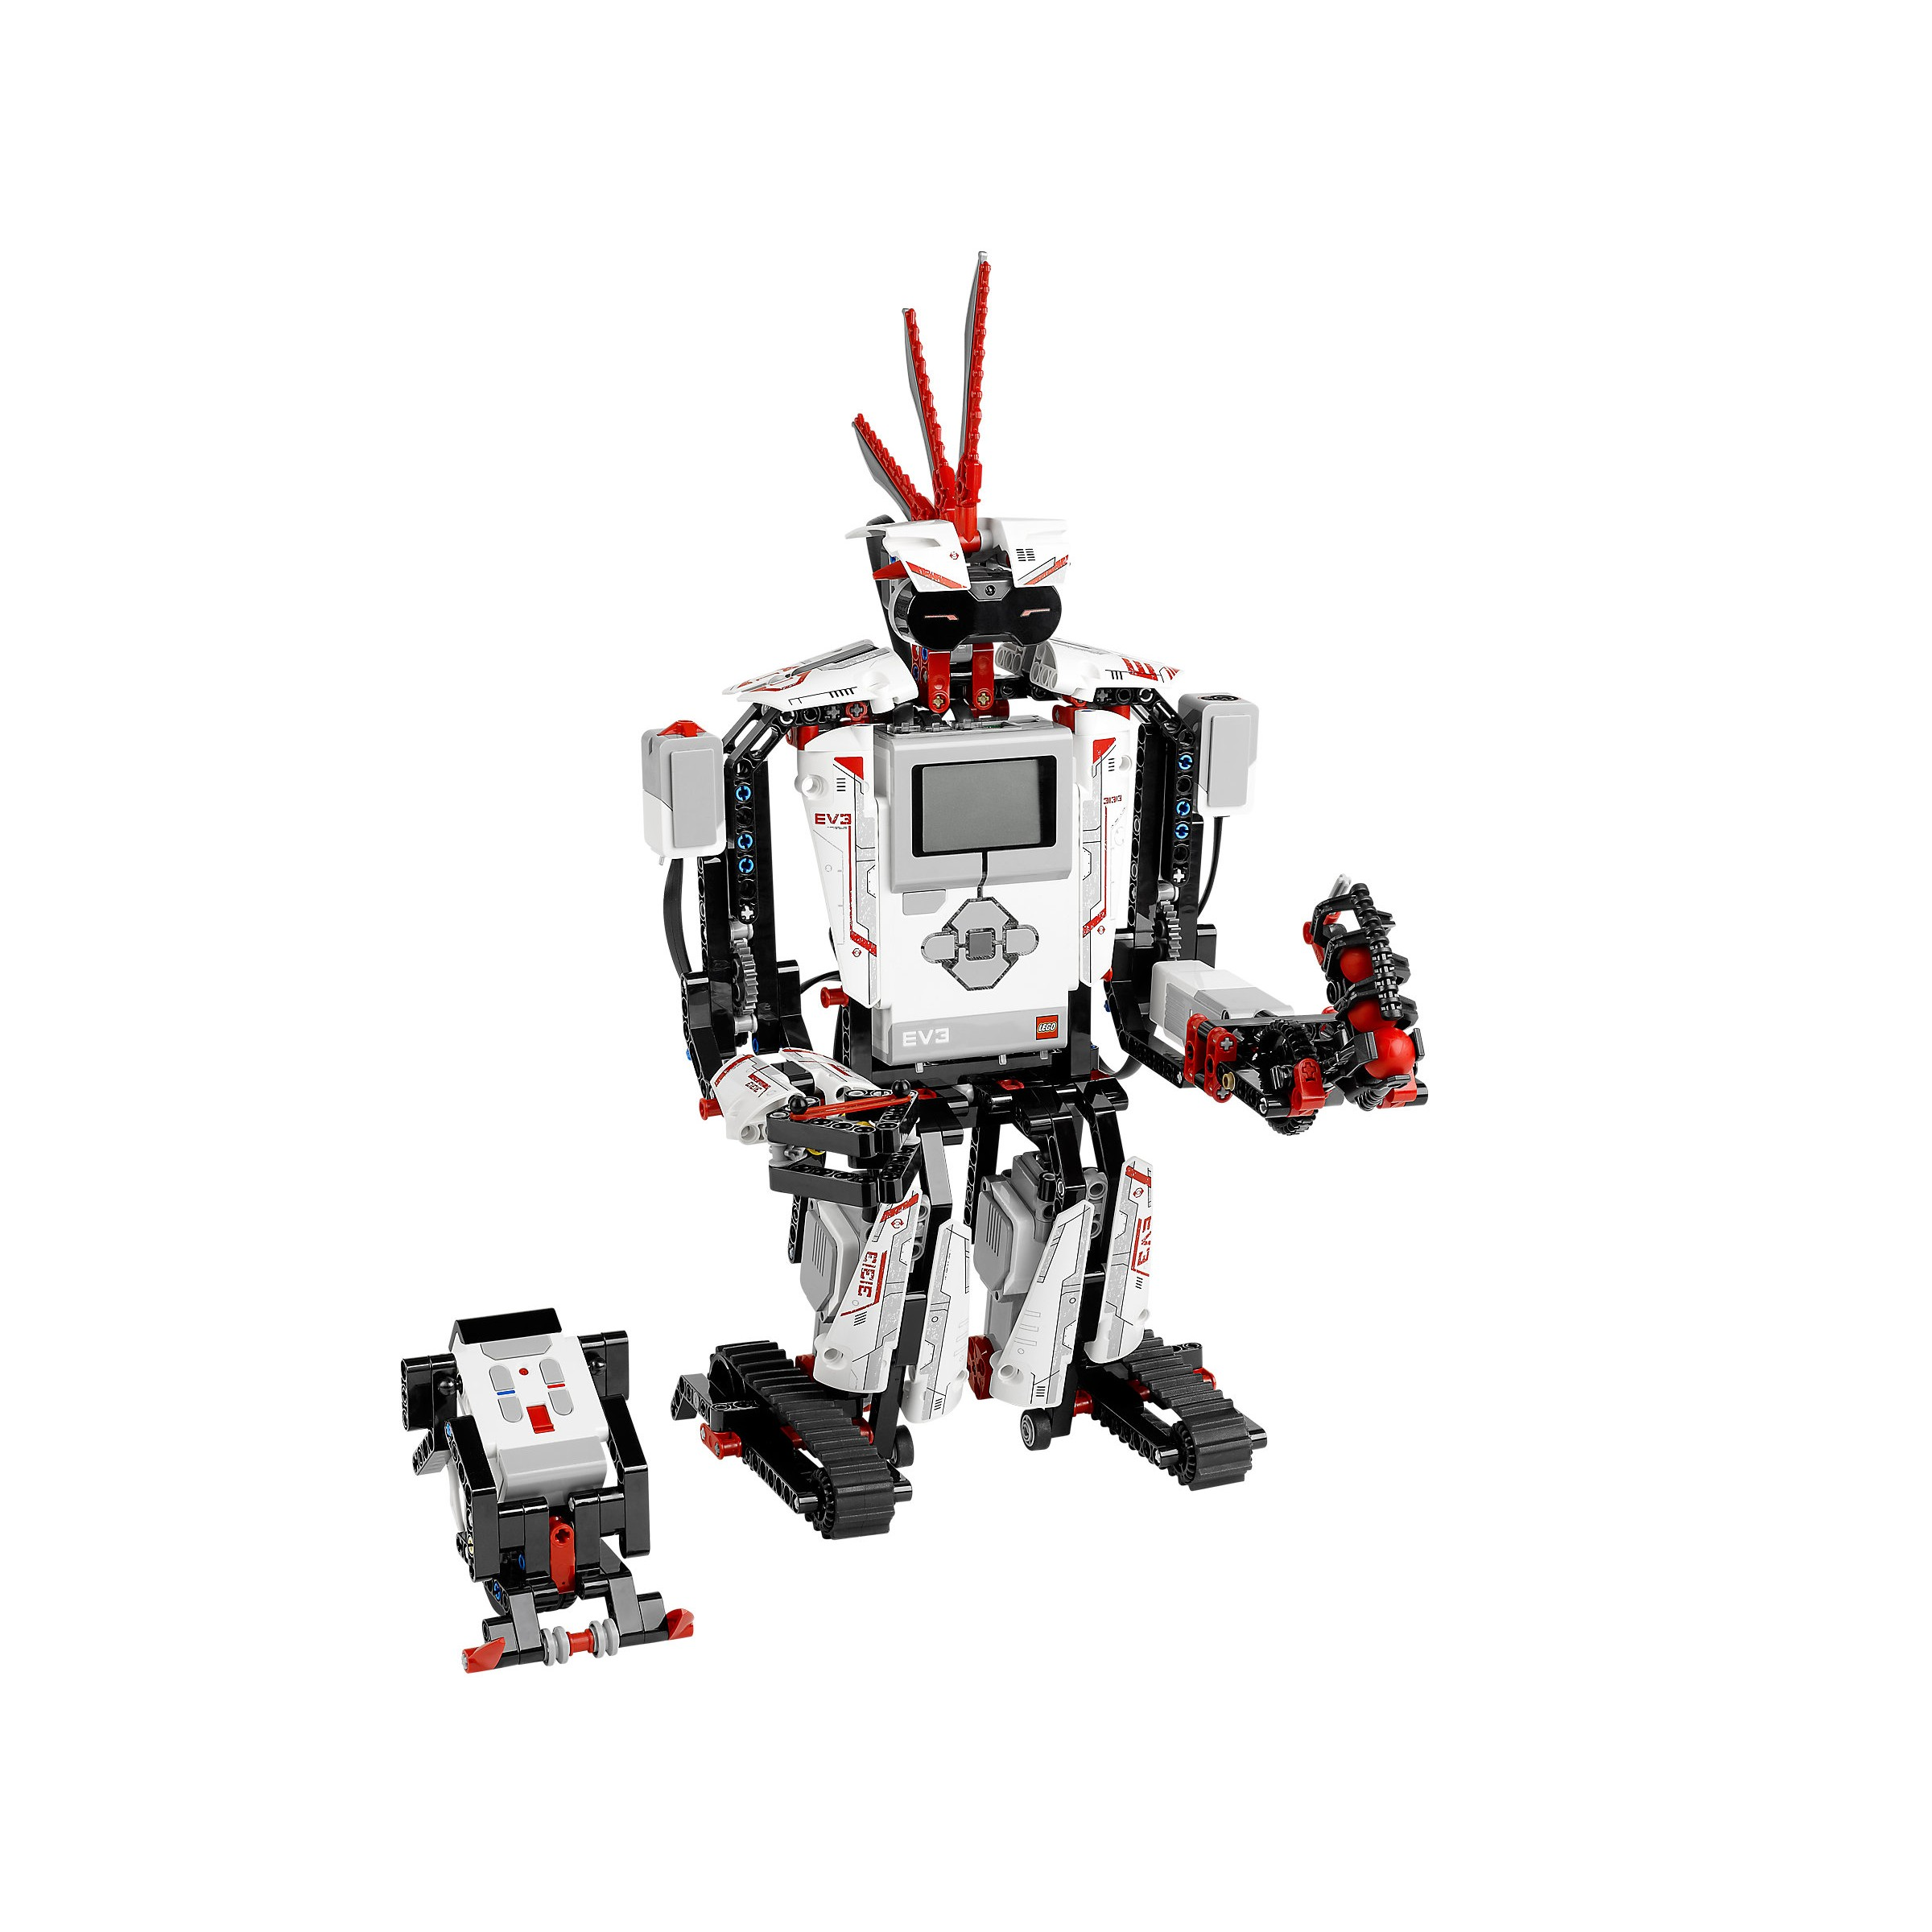 Twin Pack Lego Mindstorms Ev3 Robot At Hobby Warehouse